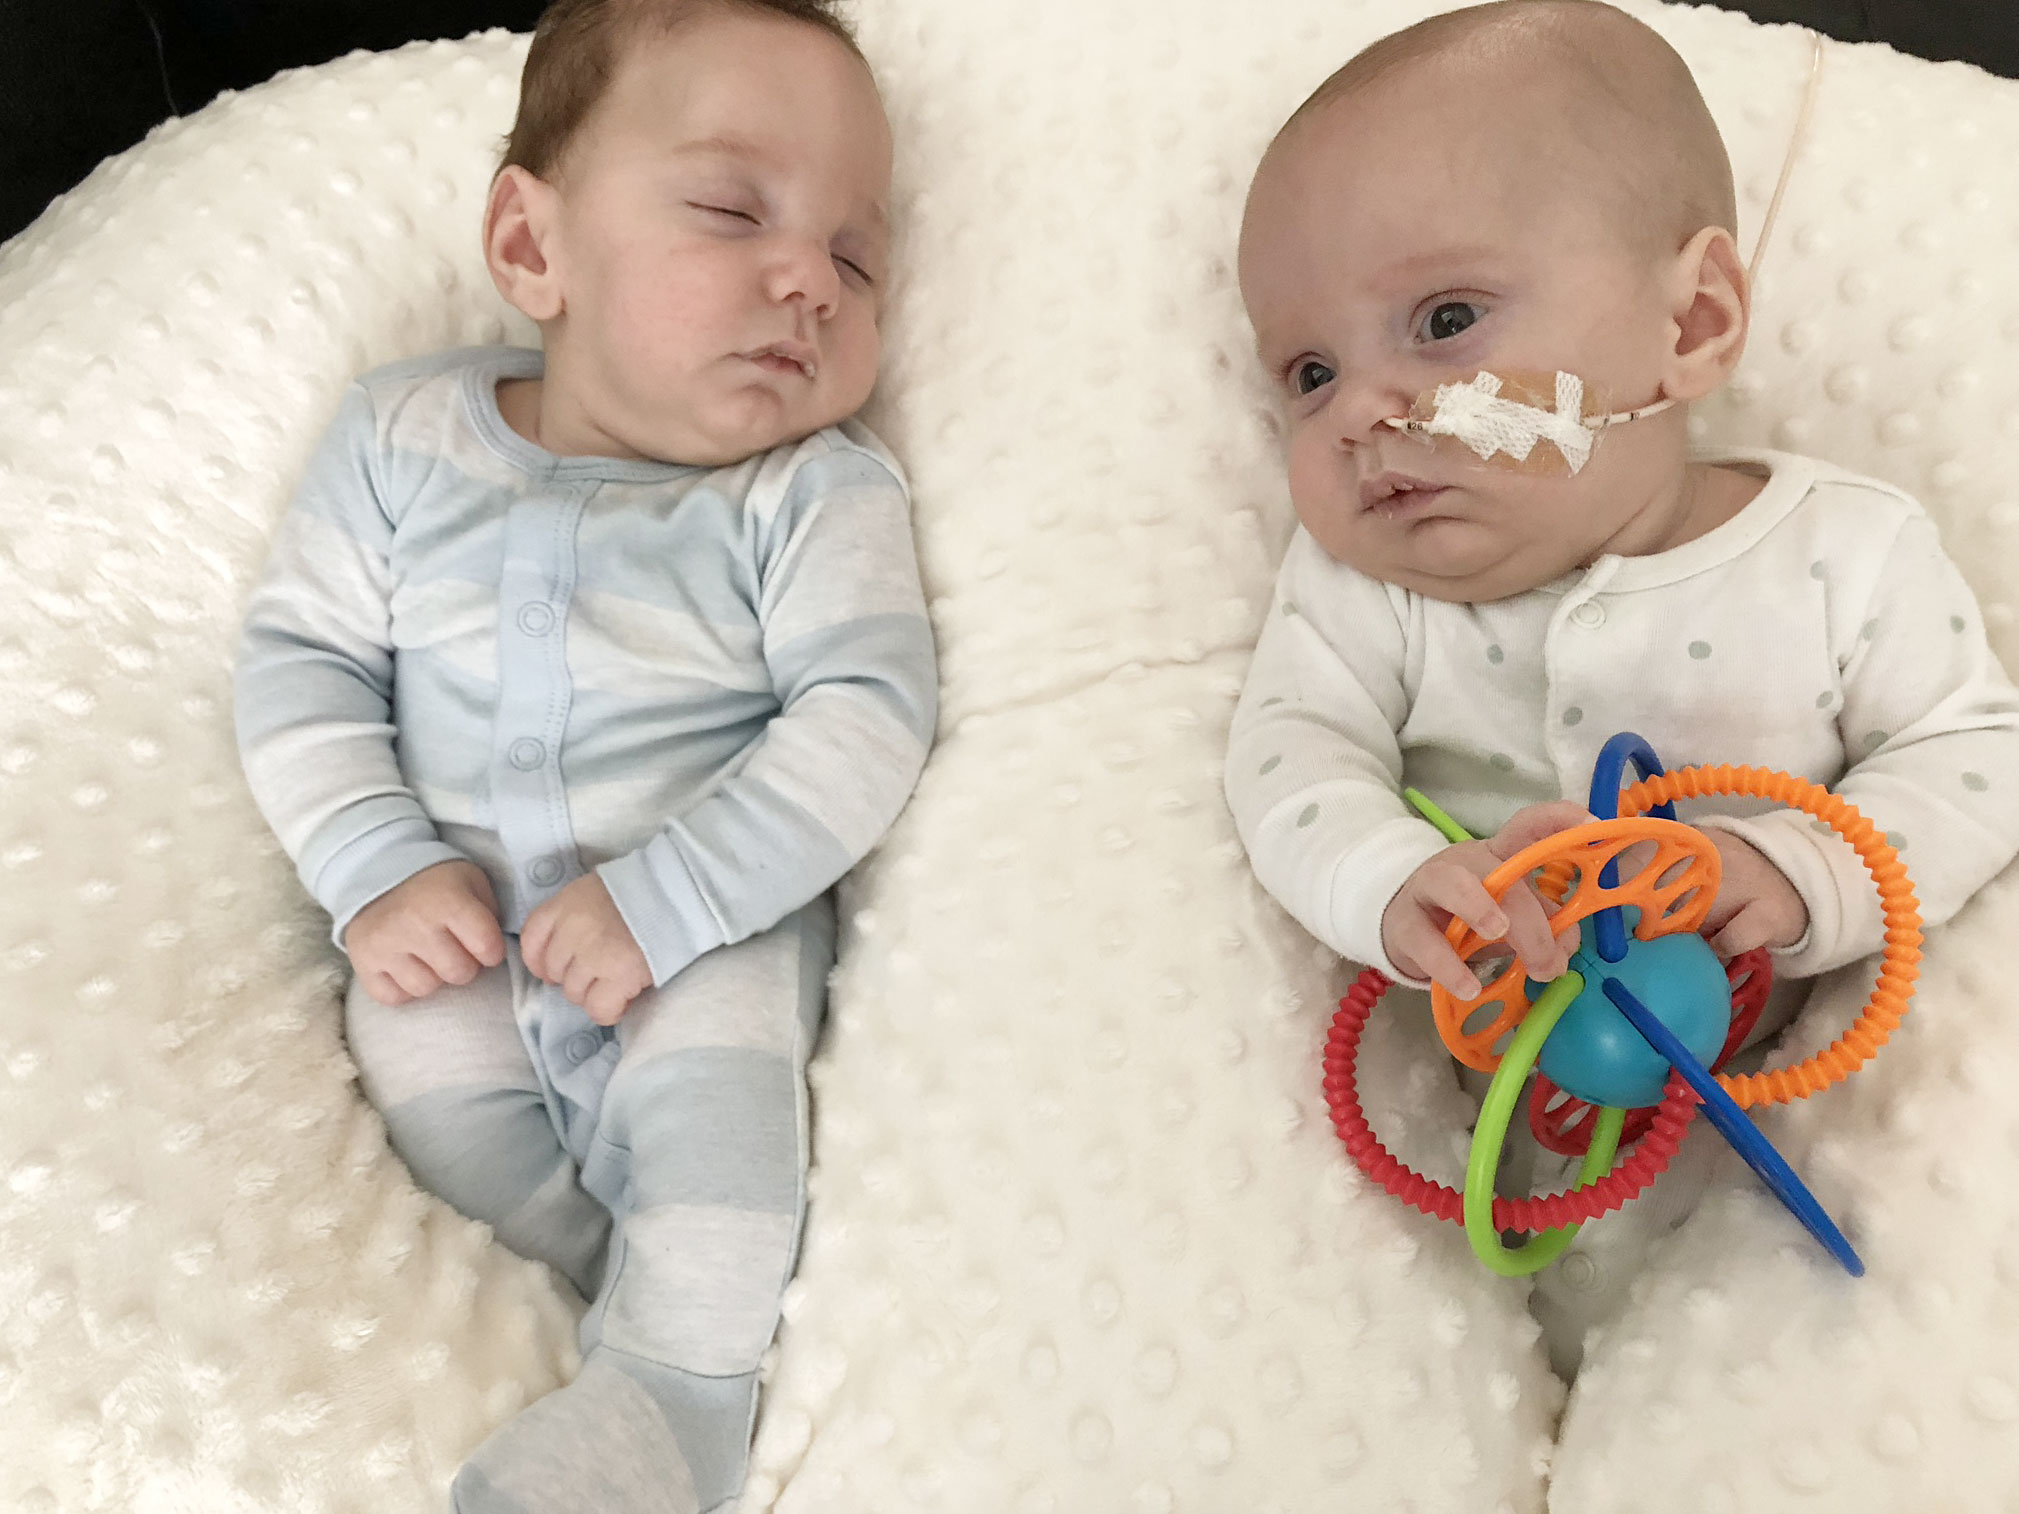 Twins with Feeding Tubes